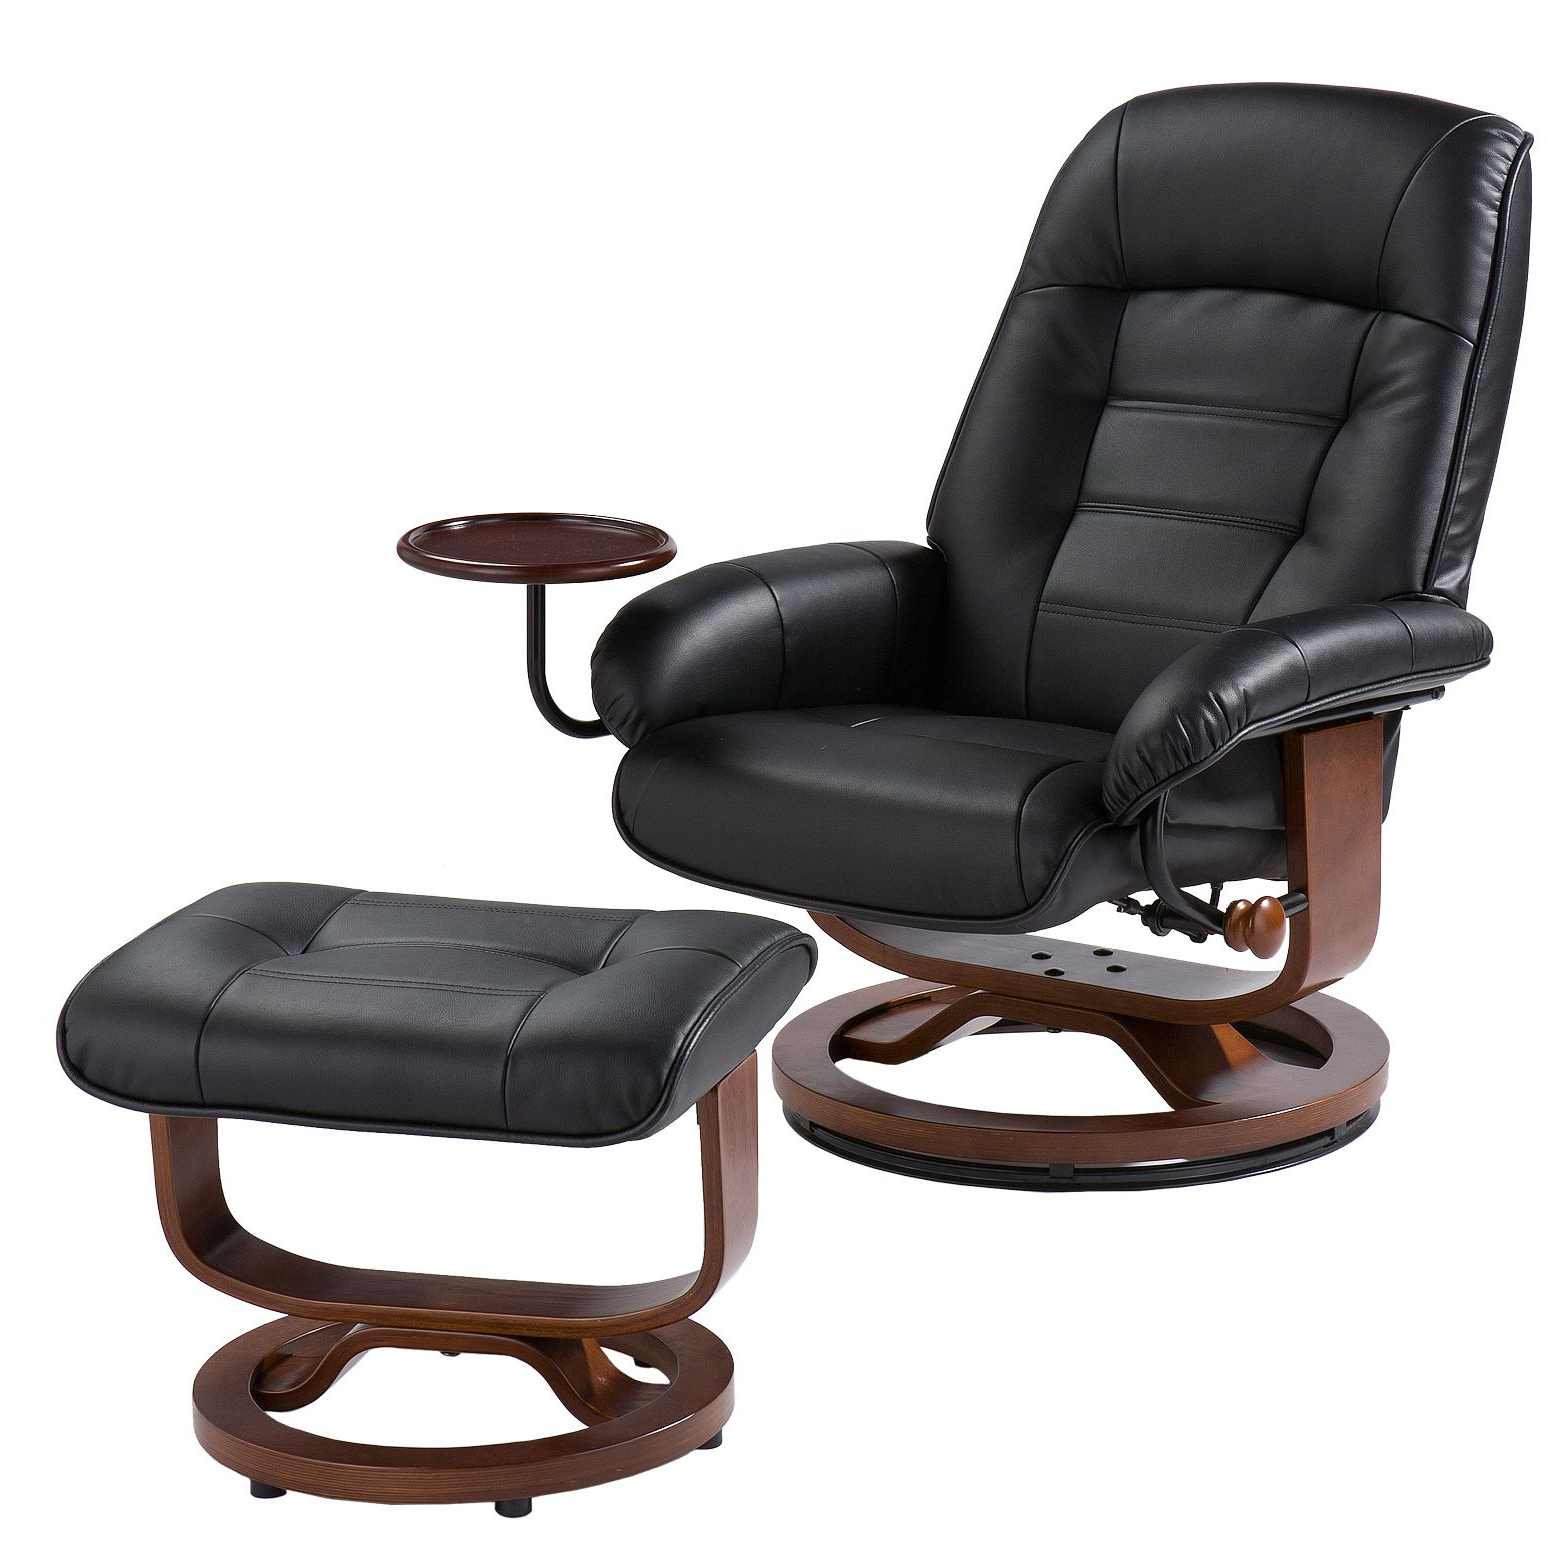 Espresso Leather Swivel Chairs With Regard To Popular Euro Swivel Recliners – Stargate Cinema (Gallery 7 of 20)